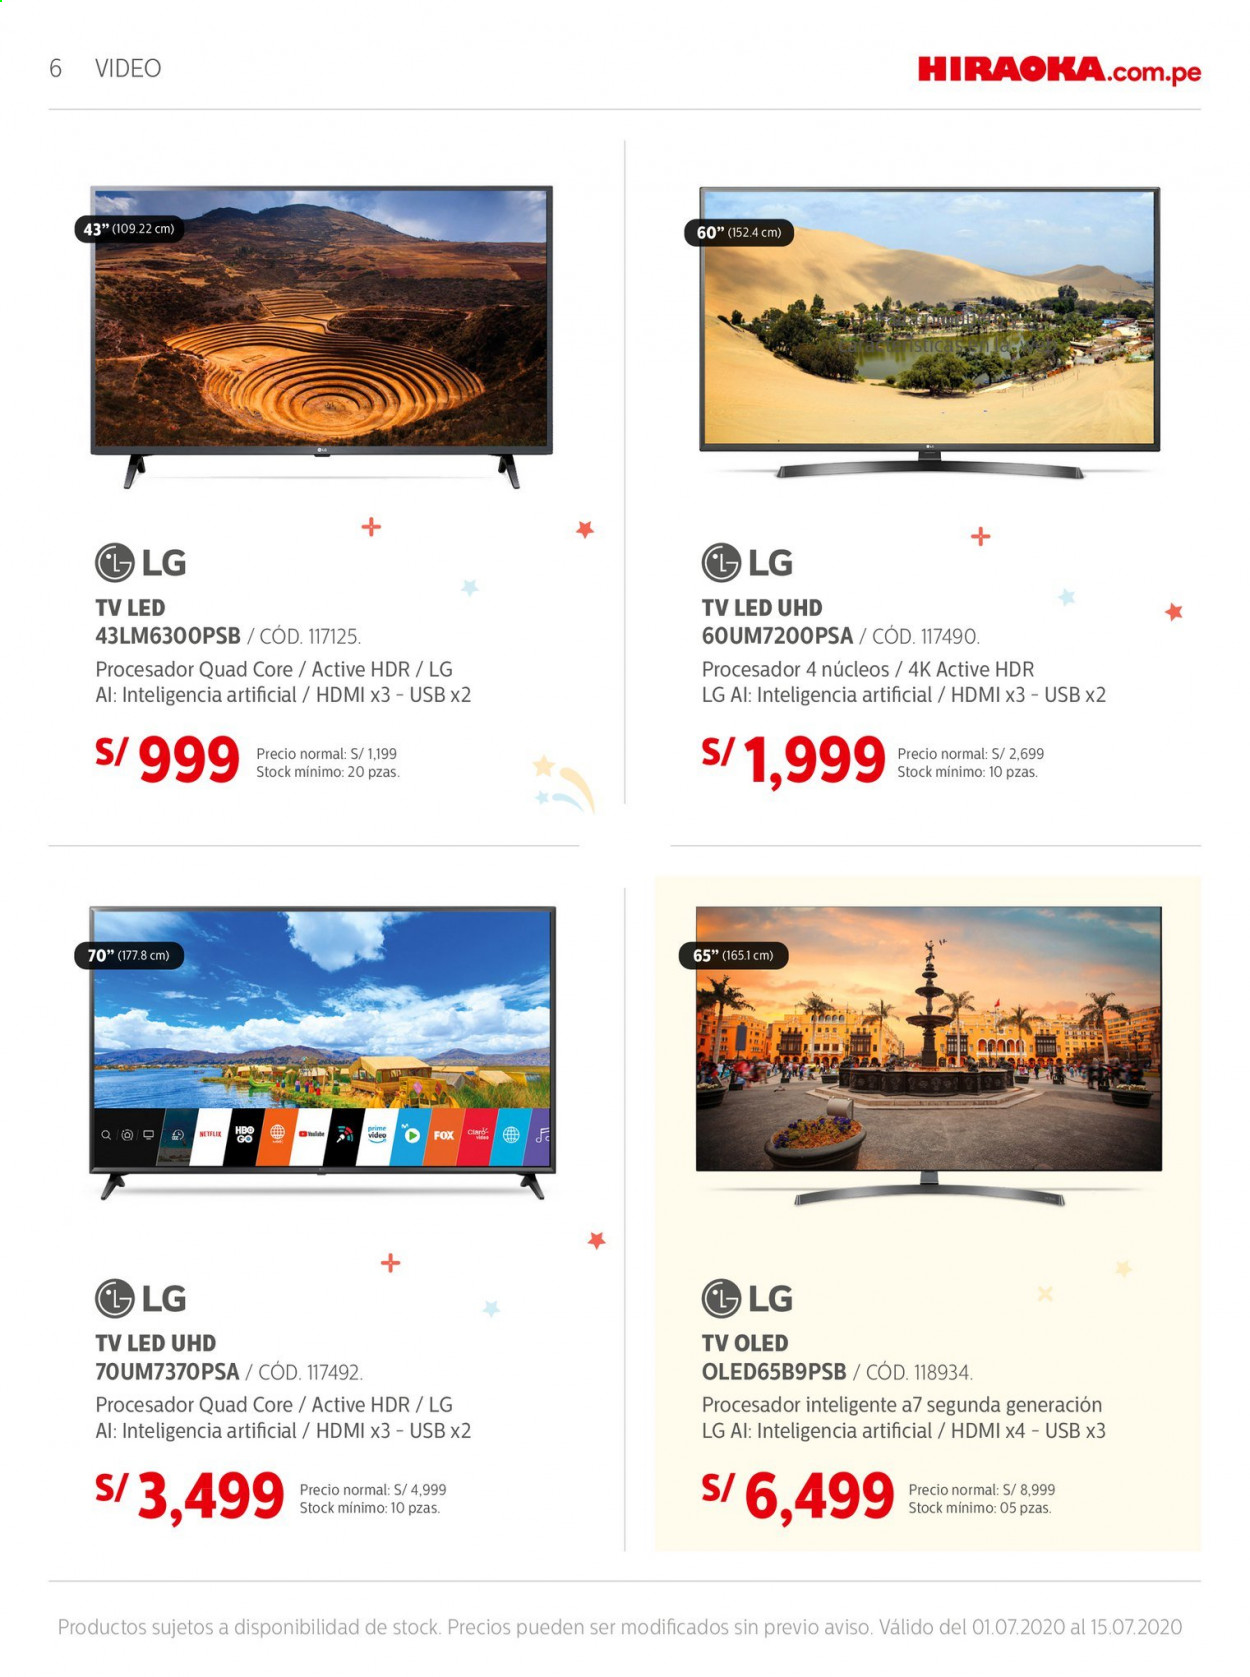 Folleto actual Importaciones Hiraoka - 1.7.2020 - 15.7.2020 - Ventas - tv led, led, hdmi, led tv, lg, procesador, televisor led, tv, usb. Página 6.